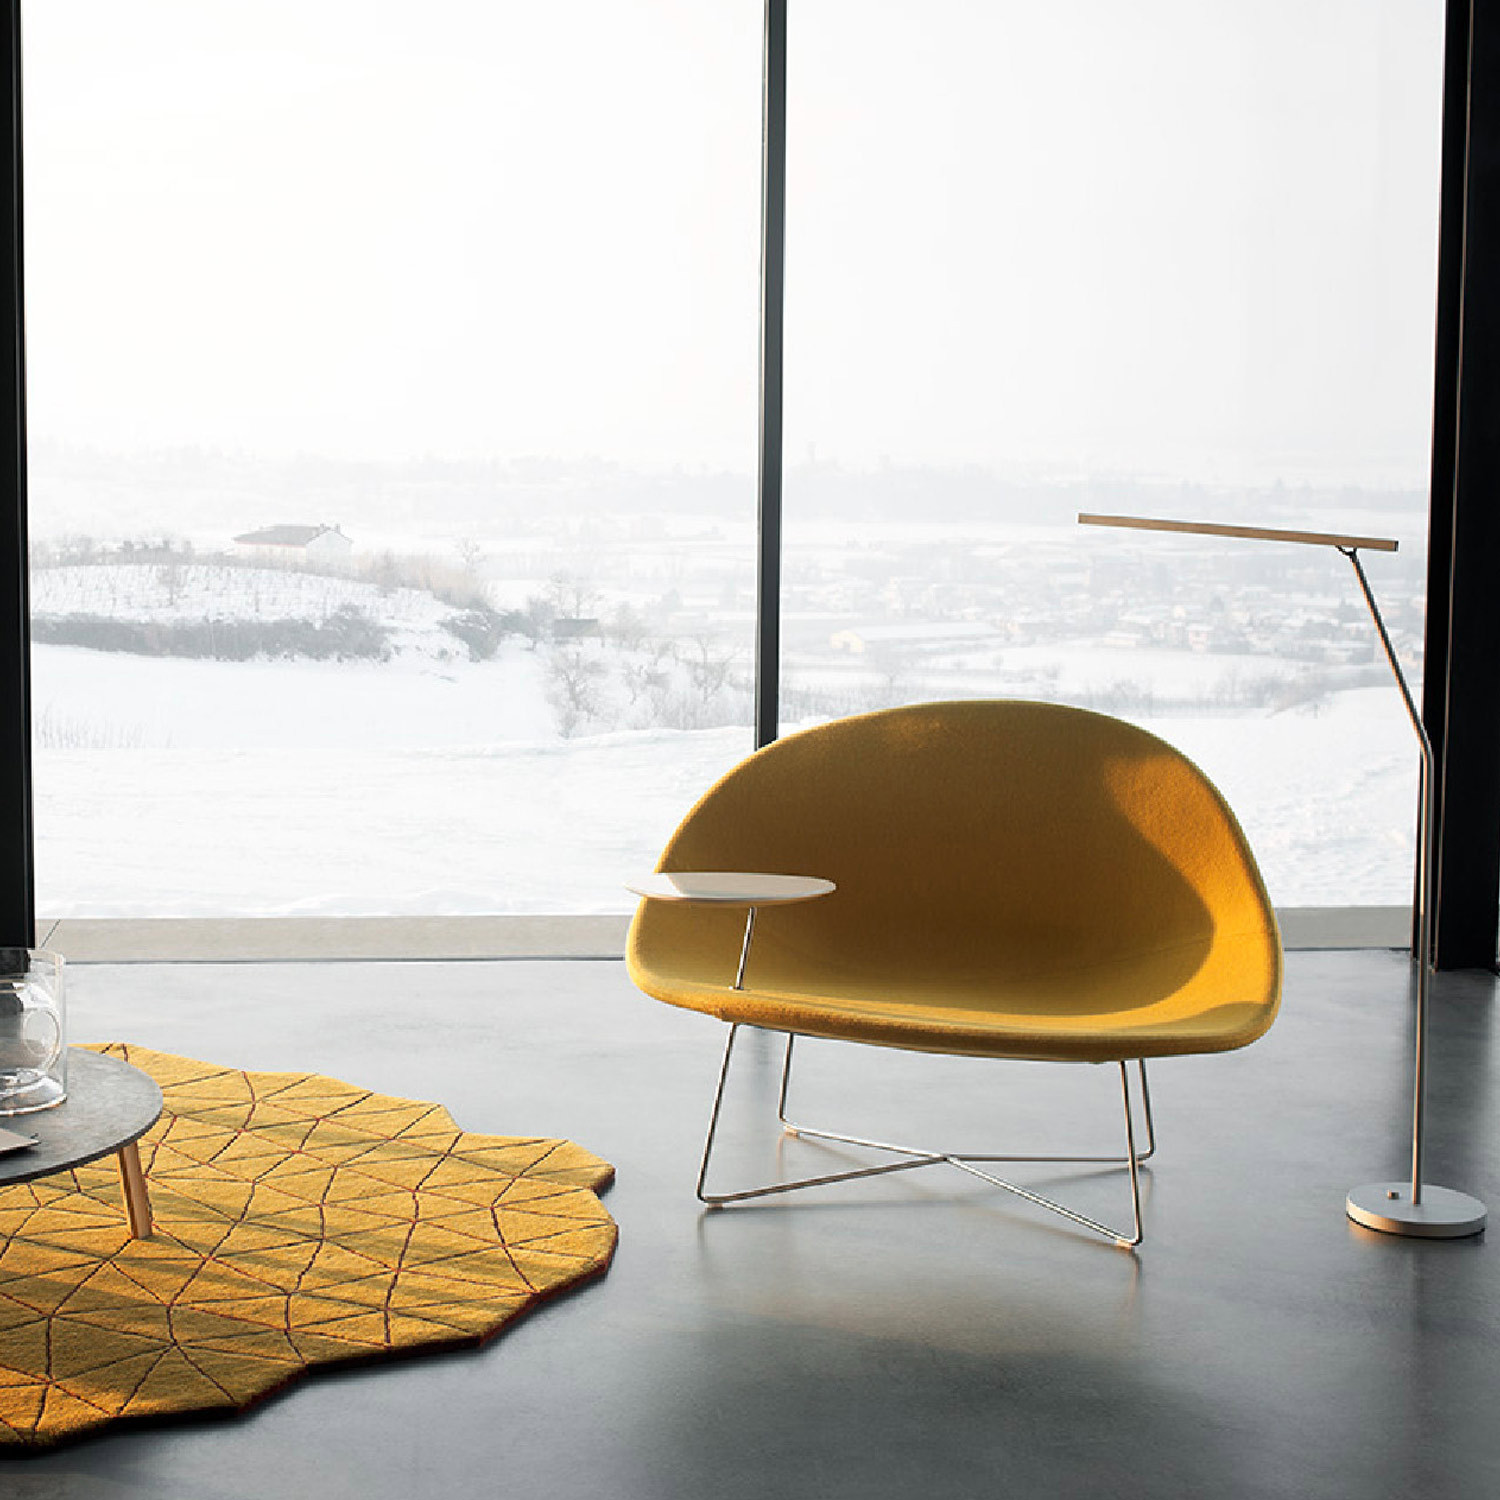 Isola Armchair by Claesson Koivisto Rune